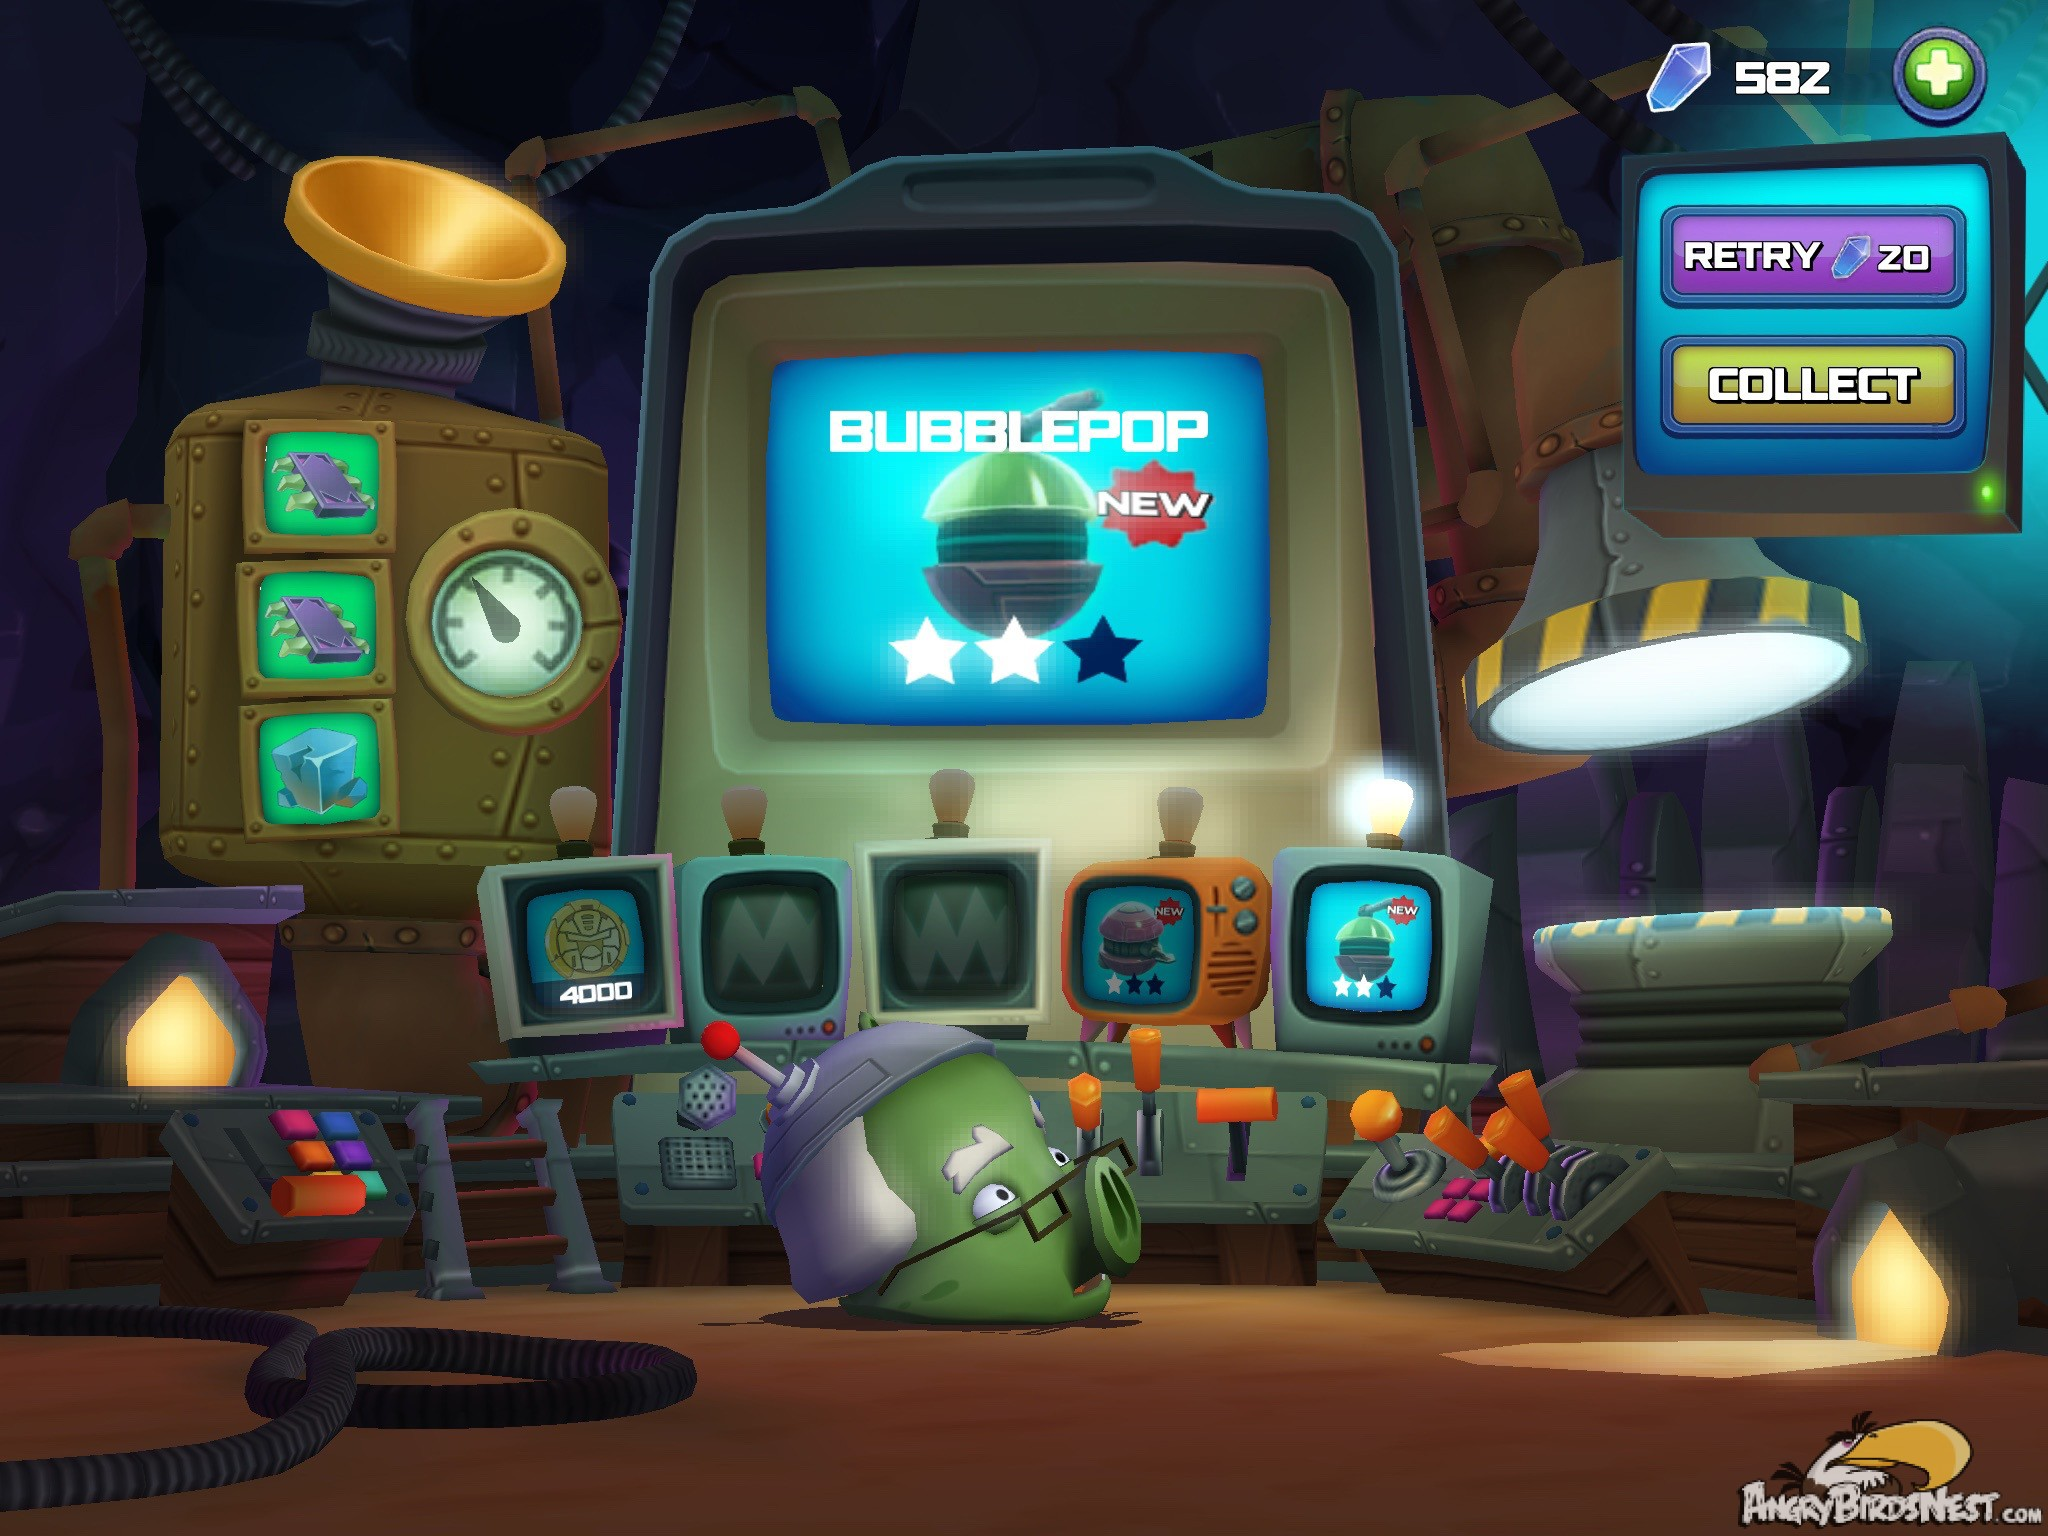 File:Angry-Birds-Transformers-Professor-Pigs-Laboratory-Screen-310x233.jpg